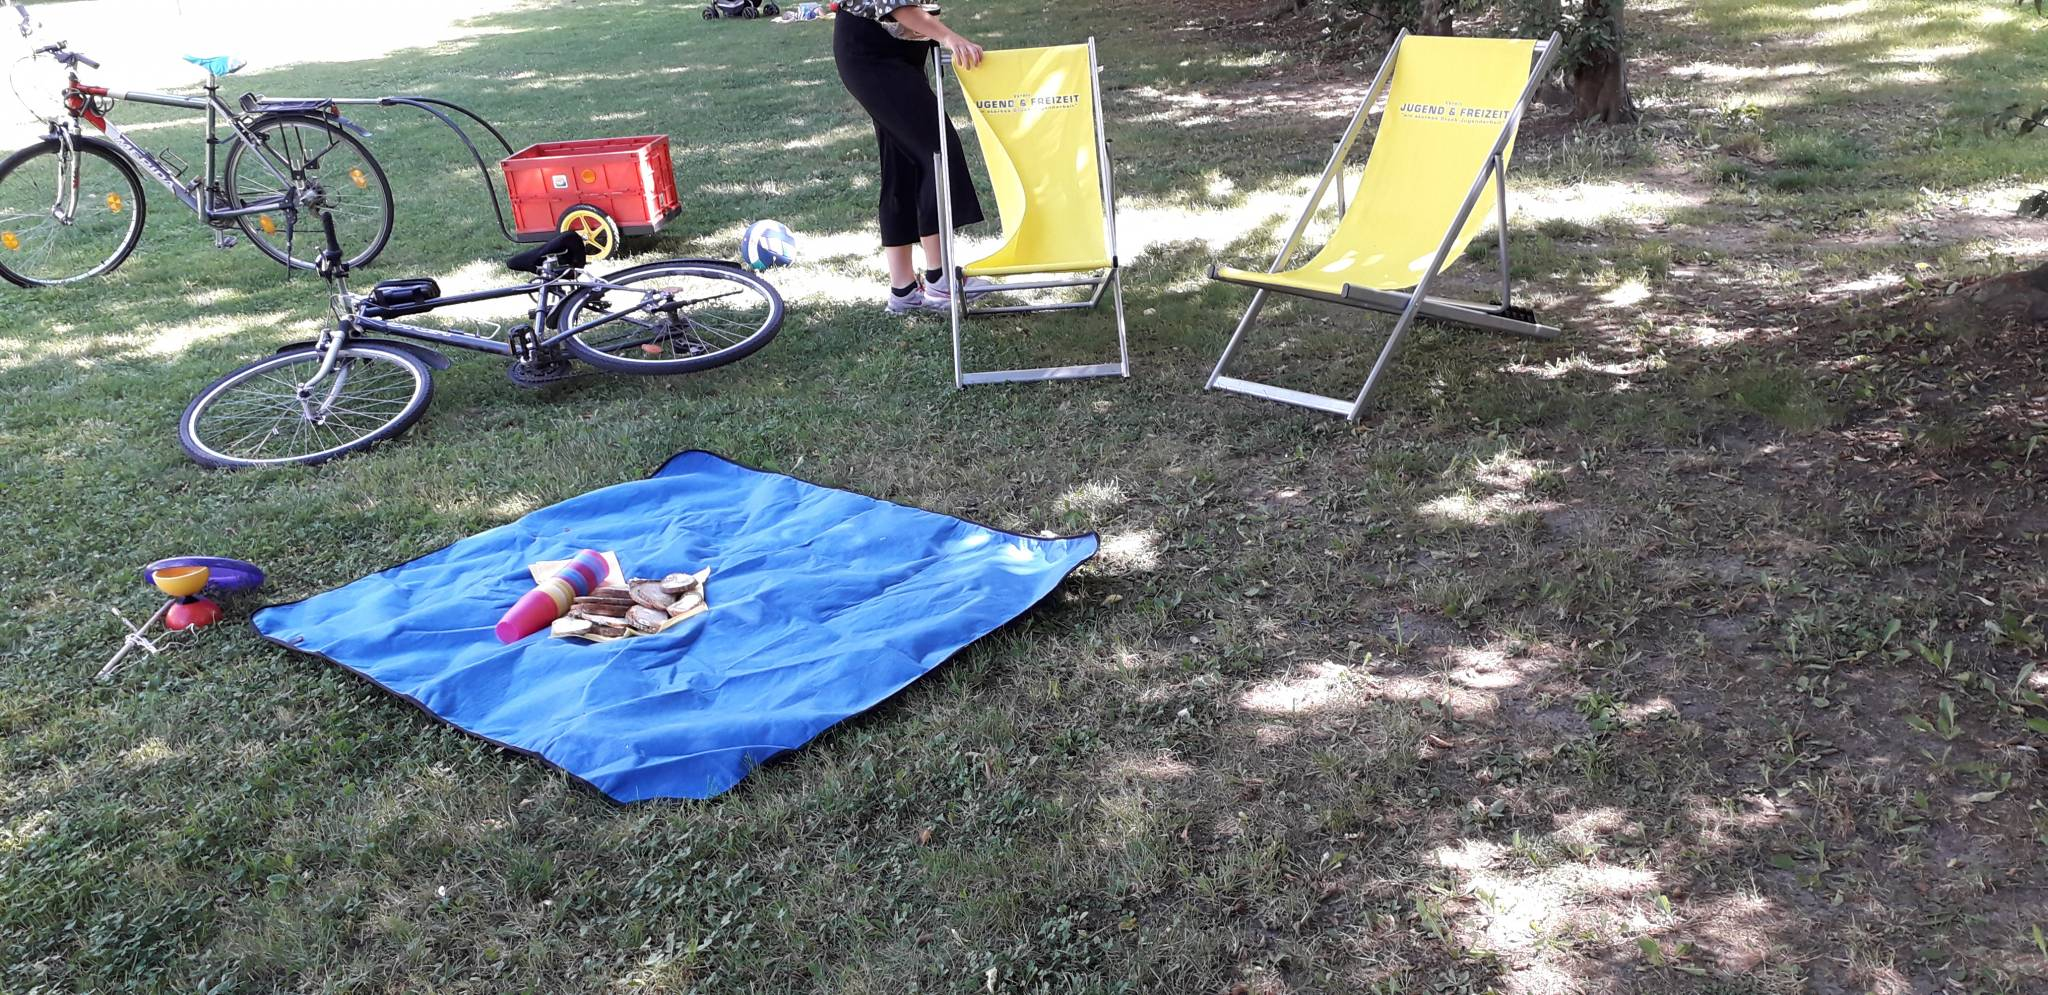 Picknick am Rädlerweg